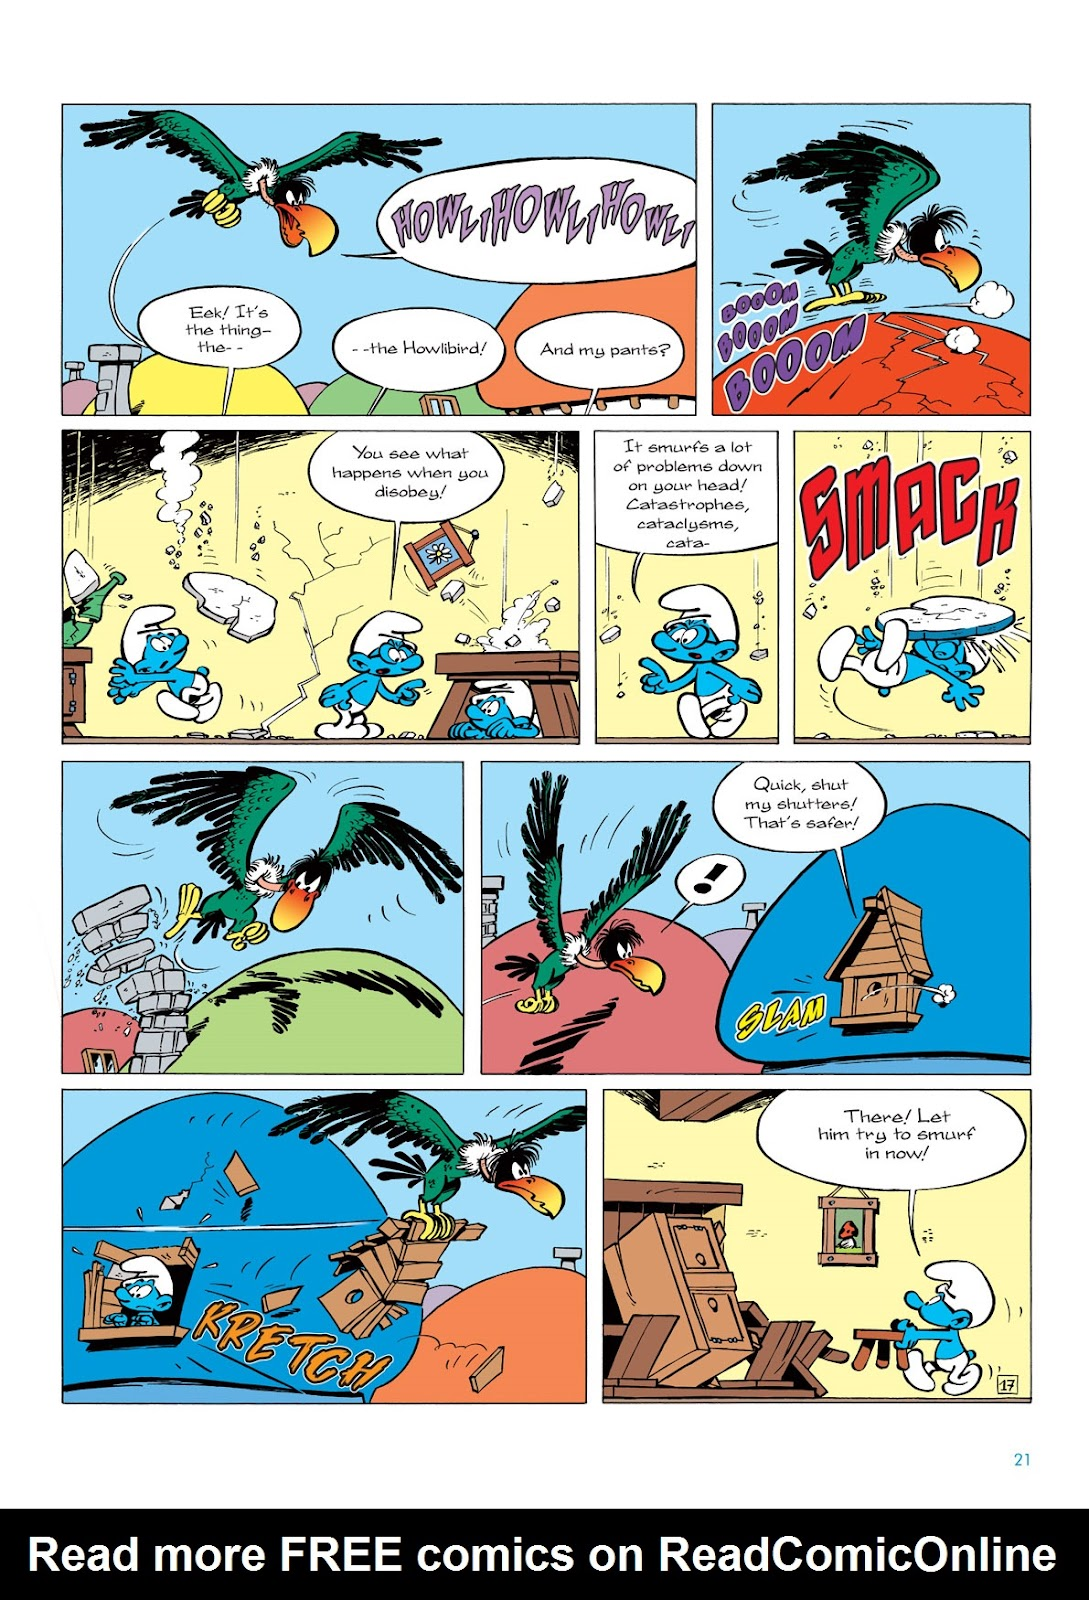 Read online The Smurfs comic -  Issue #6 - 21